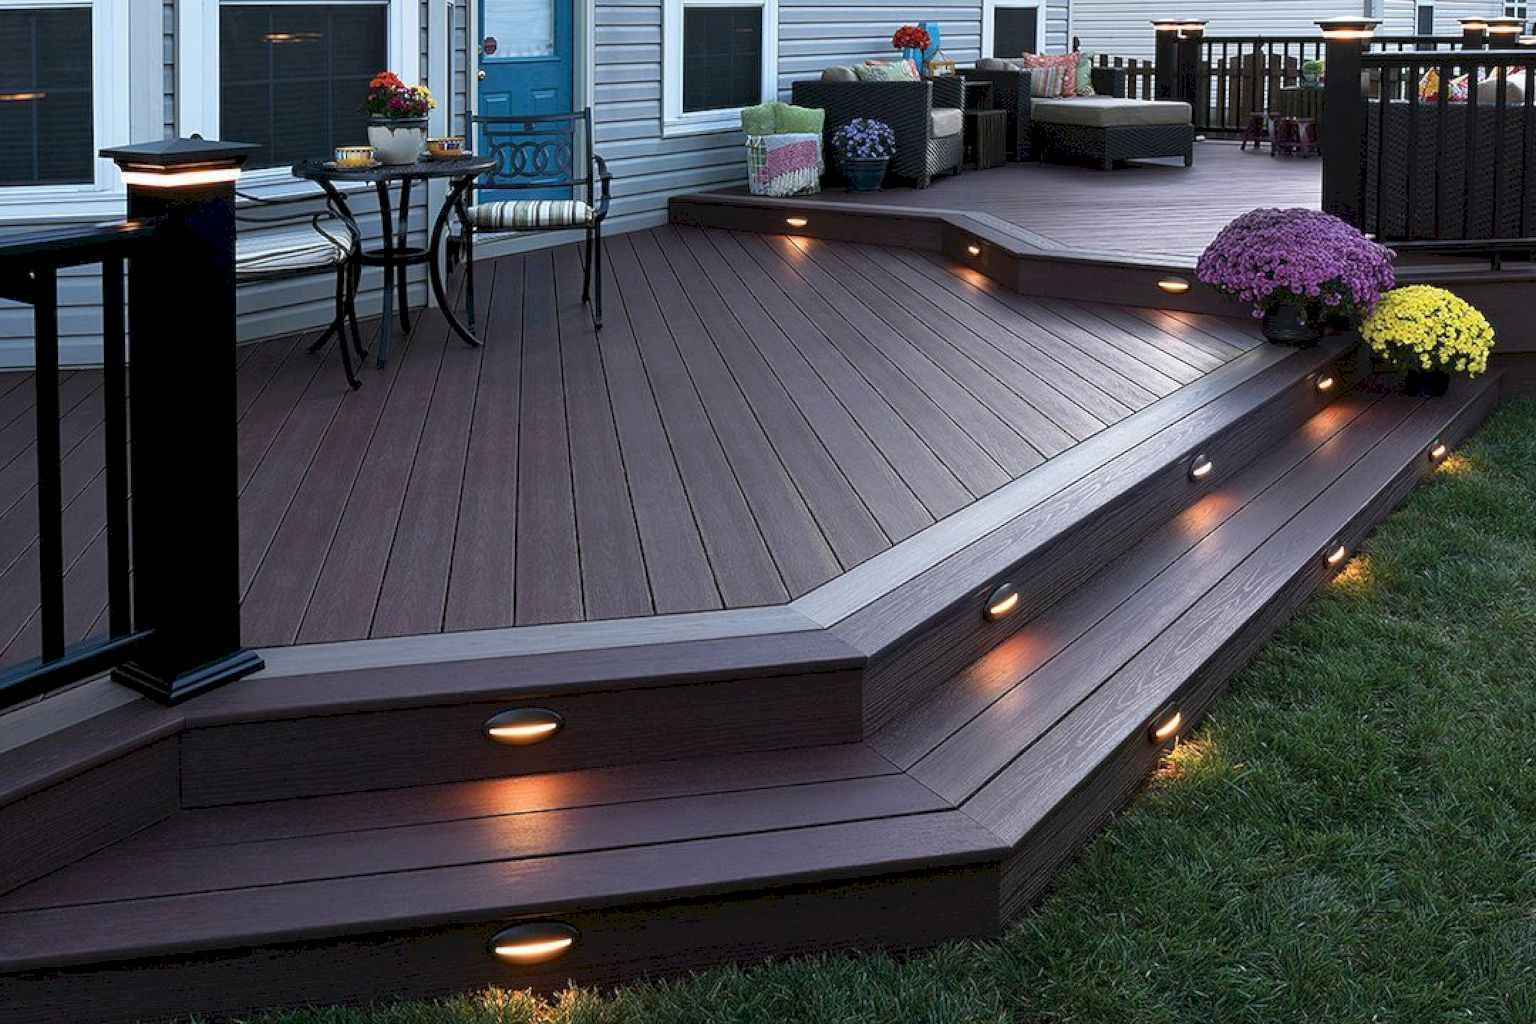 50 Awesome Backyard Patio Deck Ideas Decoreditor within Backyard Patio Deck Ideas